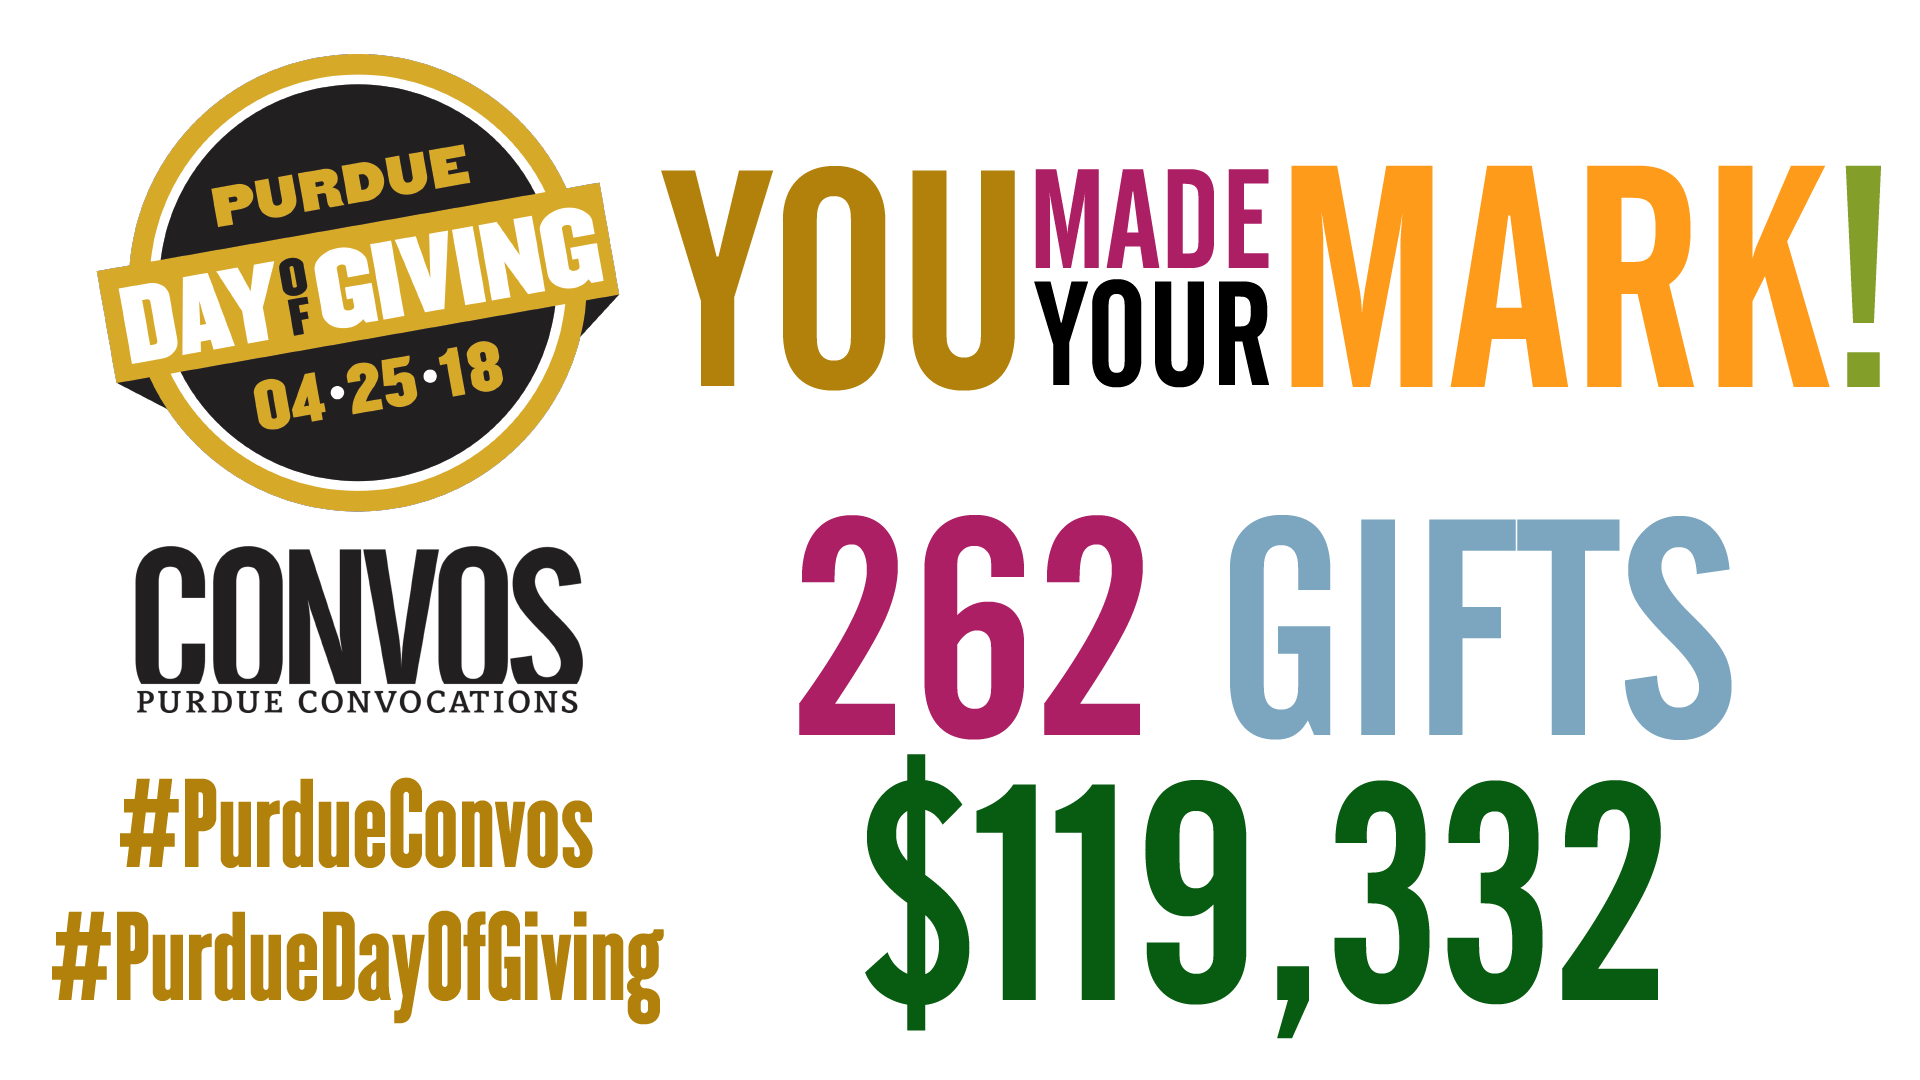 You Made Your Mark! 262 Gifts for a total of $119,332 on Purdue Day of Giving, April 25, 2018